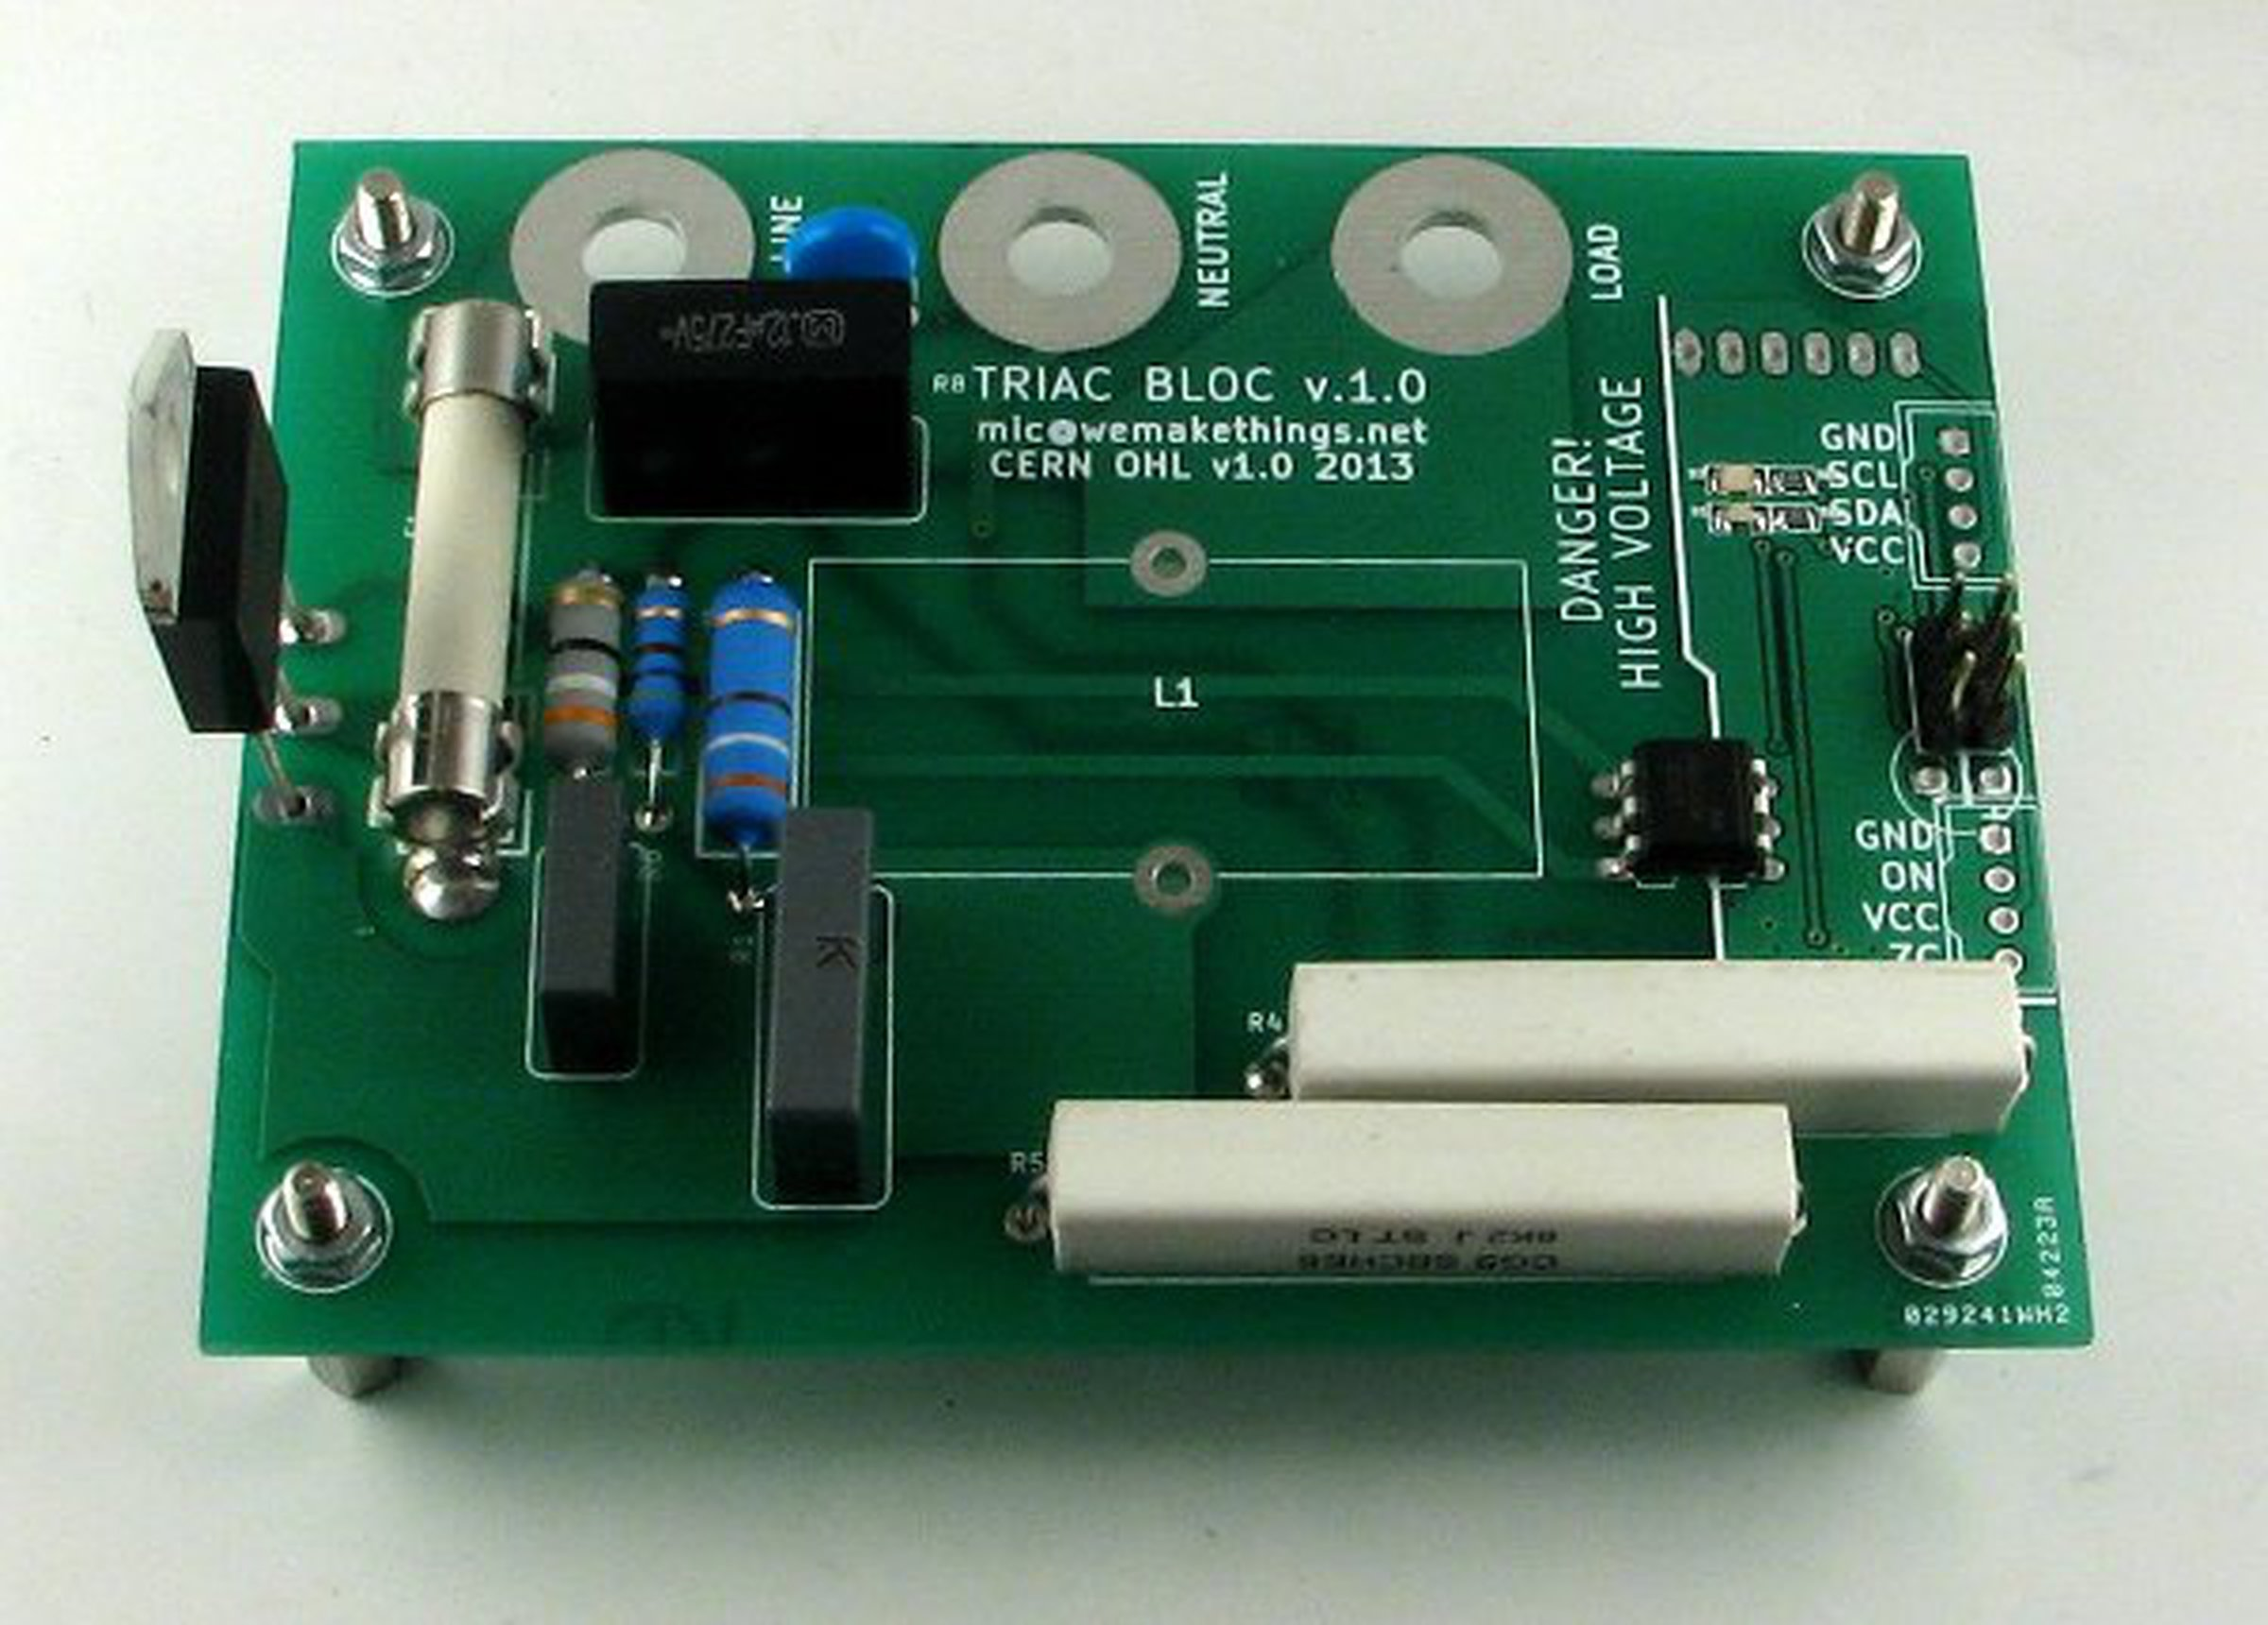 Triac Bloc I2c Mains Voltage Controller From Catnip Electronics On Wireless Tester 1